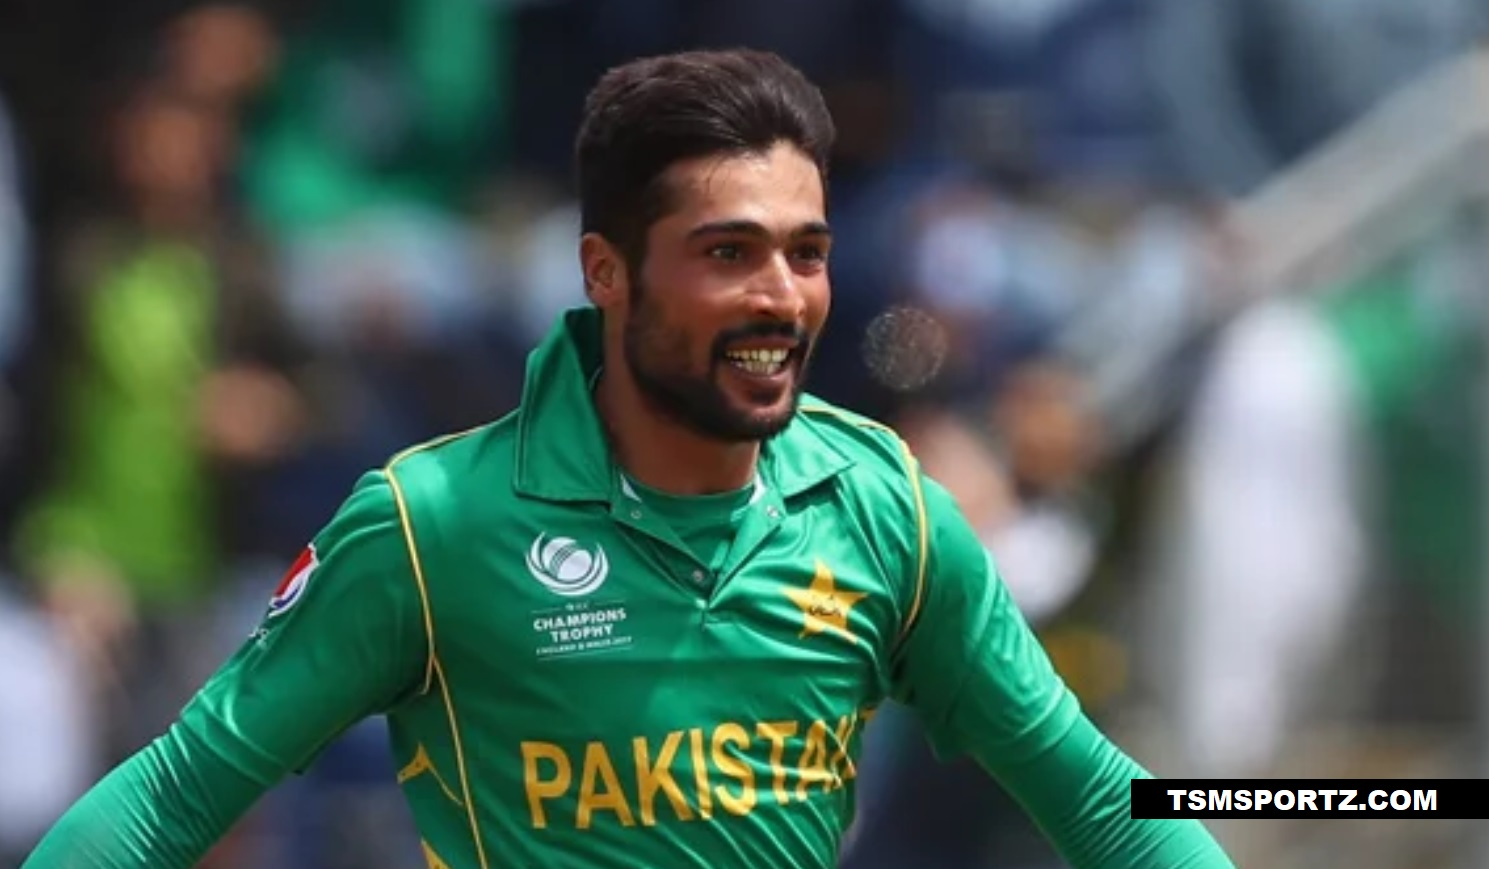 longest ban on cricketers M.Amir 5 years after 2010